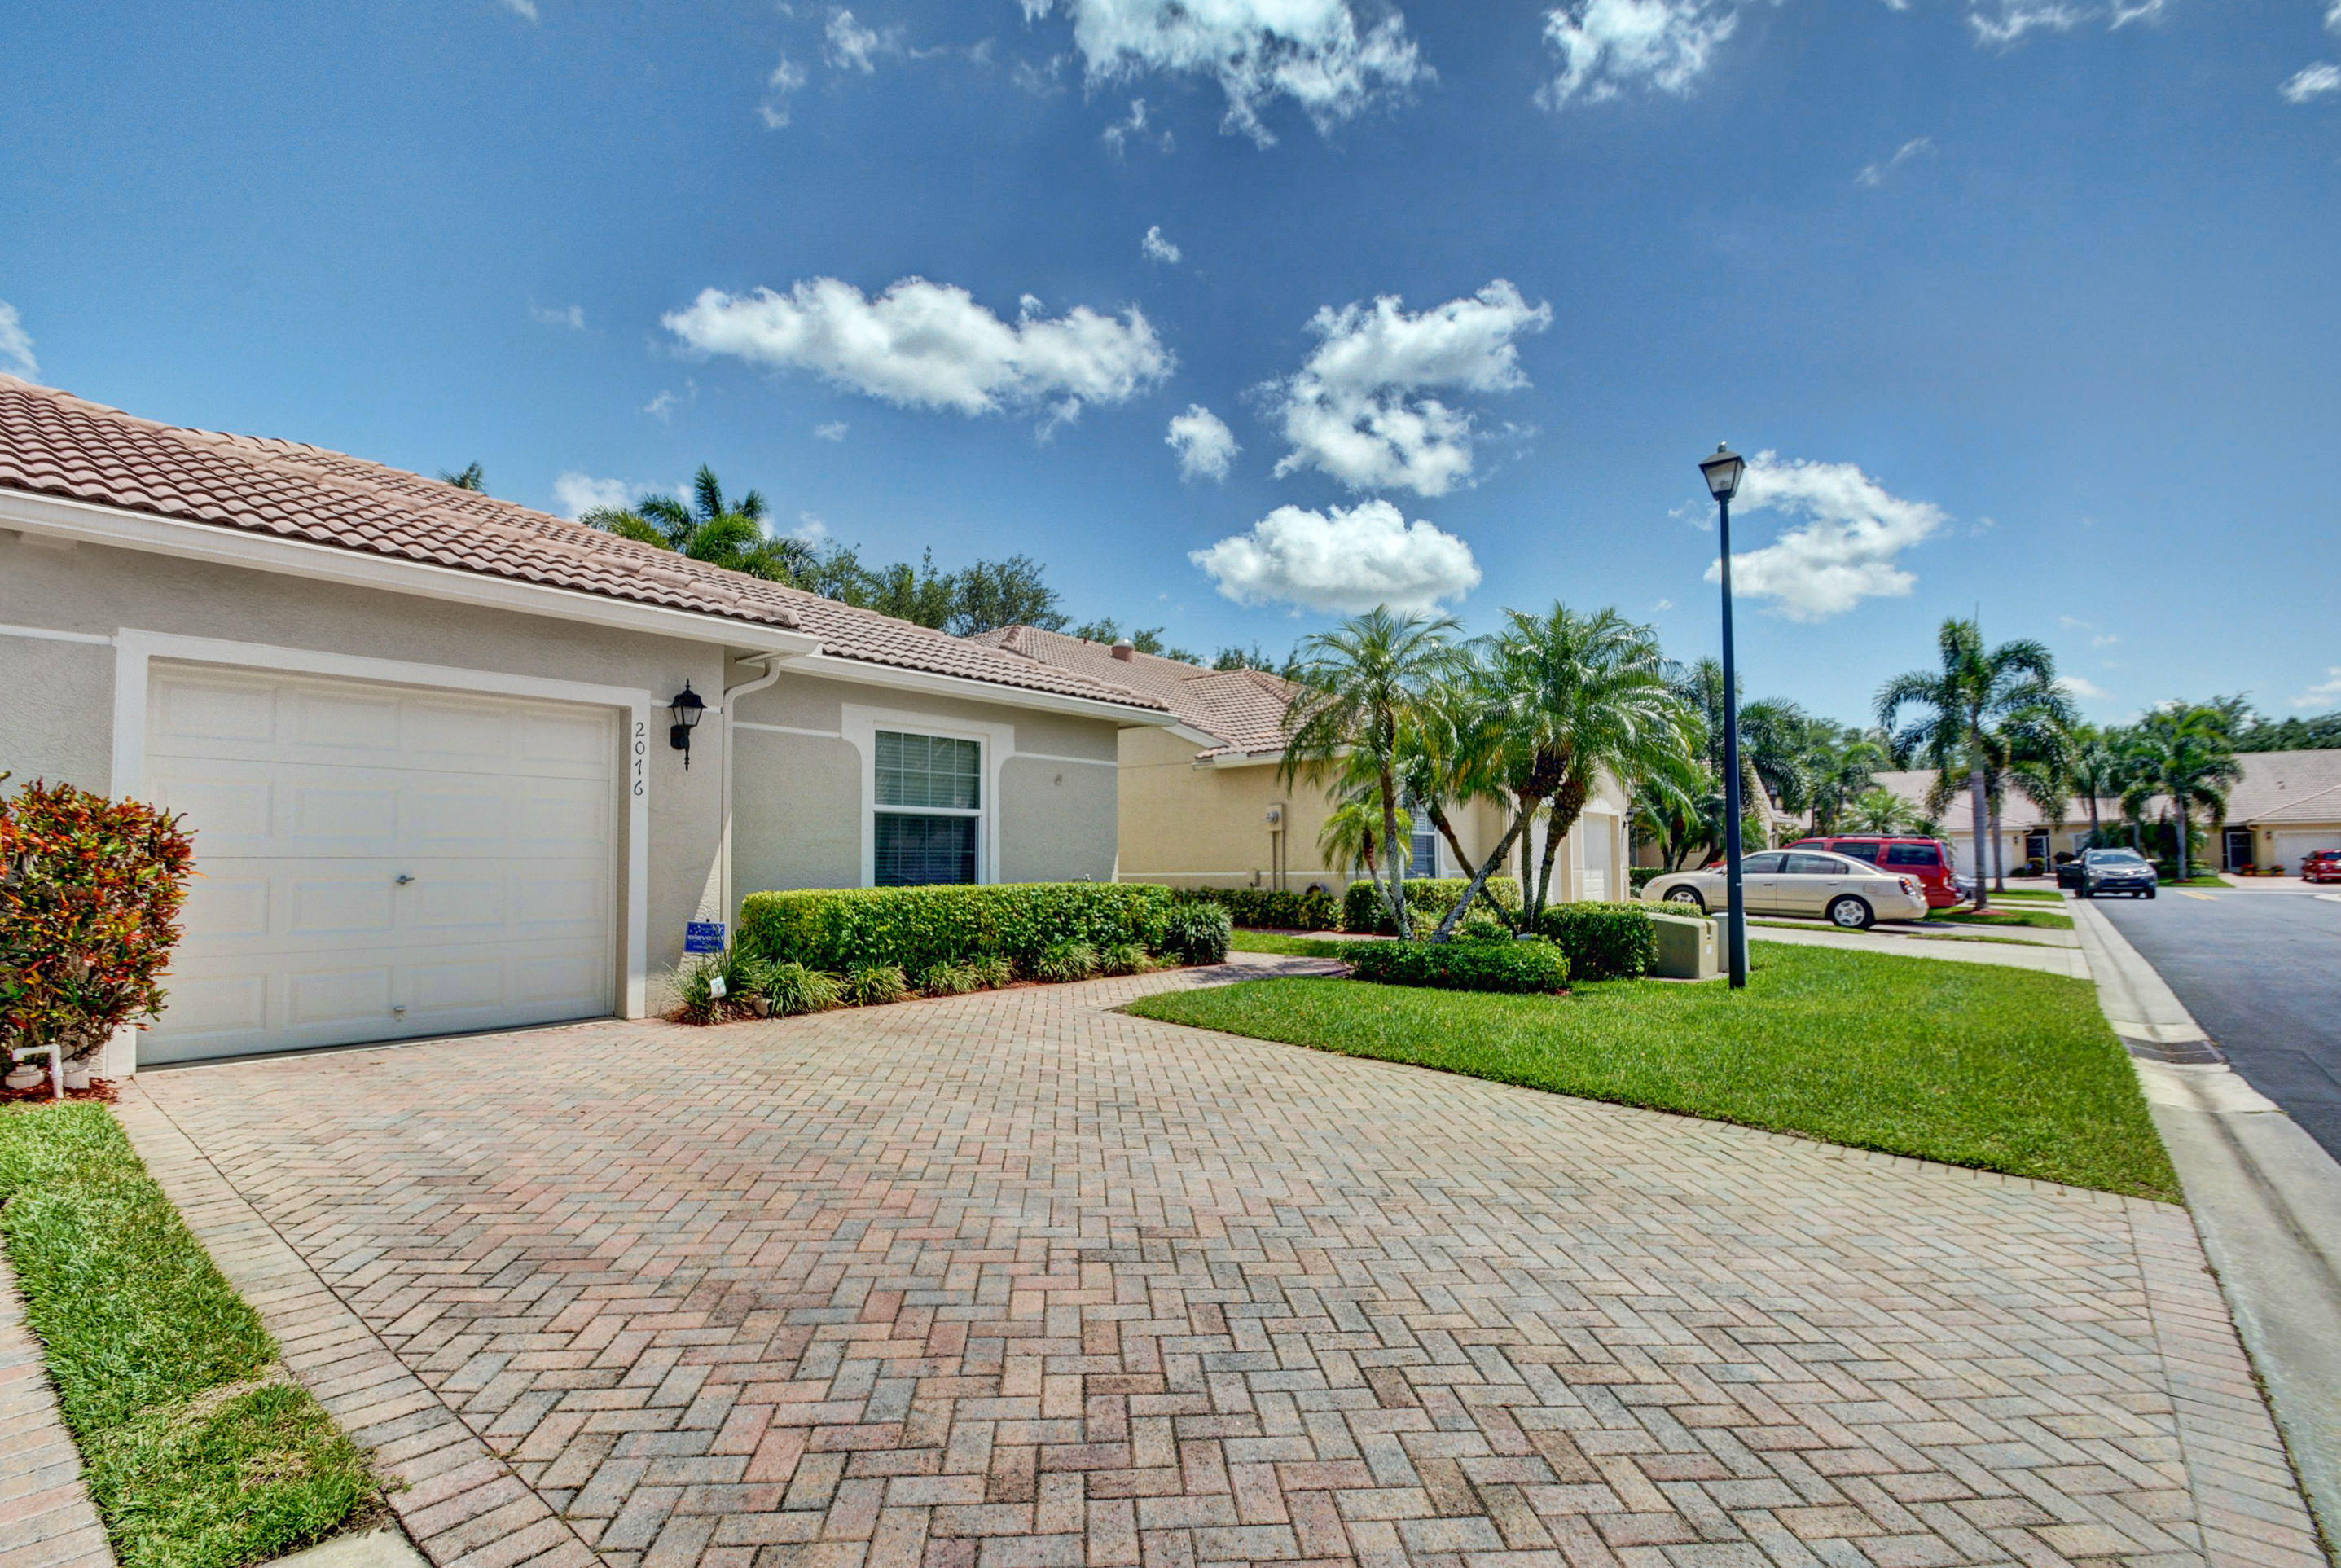 Home for sale in Baywinds, Bridgeport West Palm Beach Florida